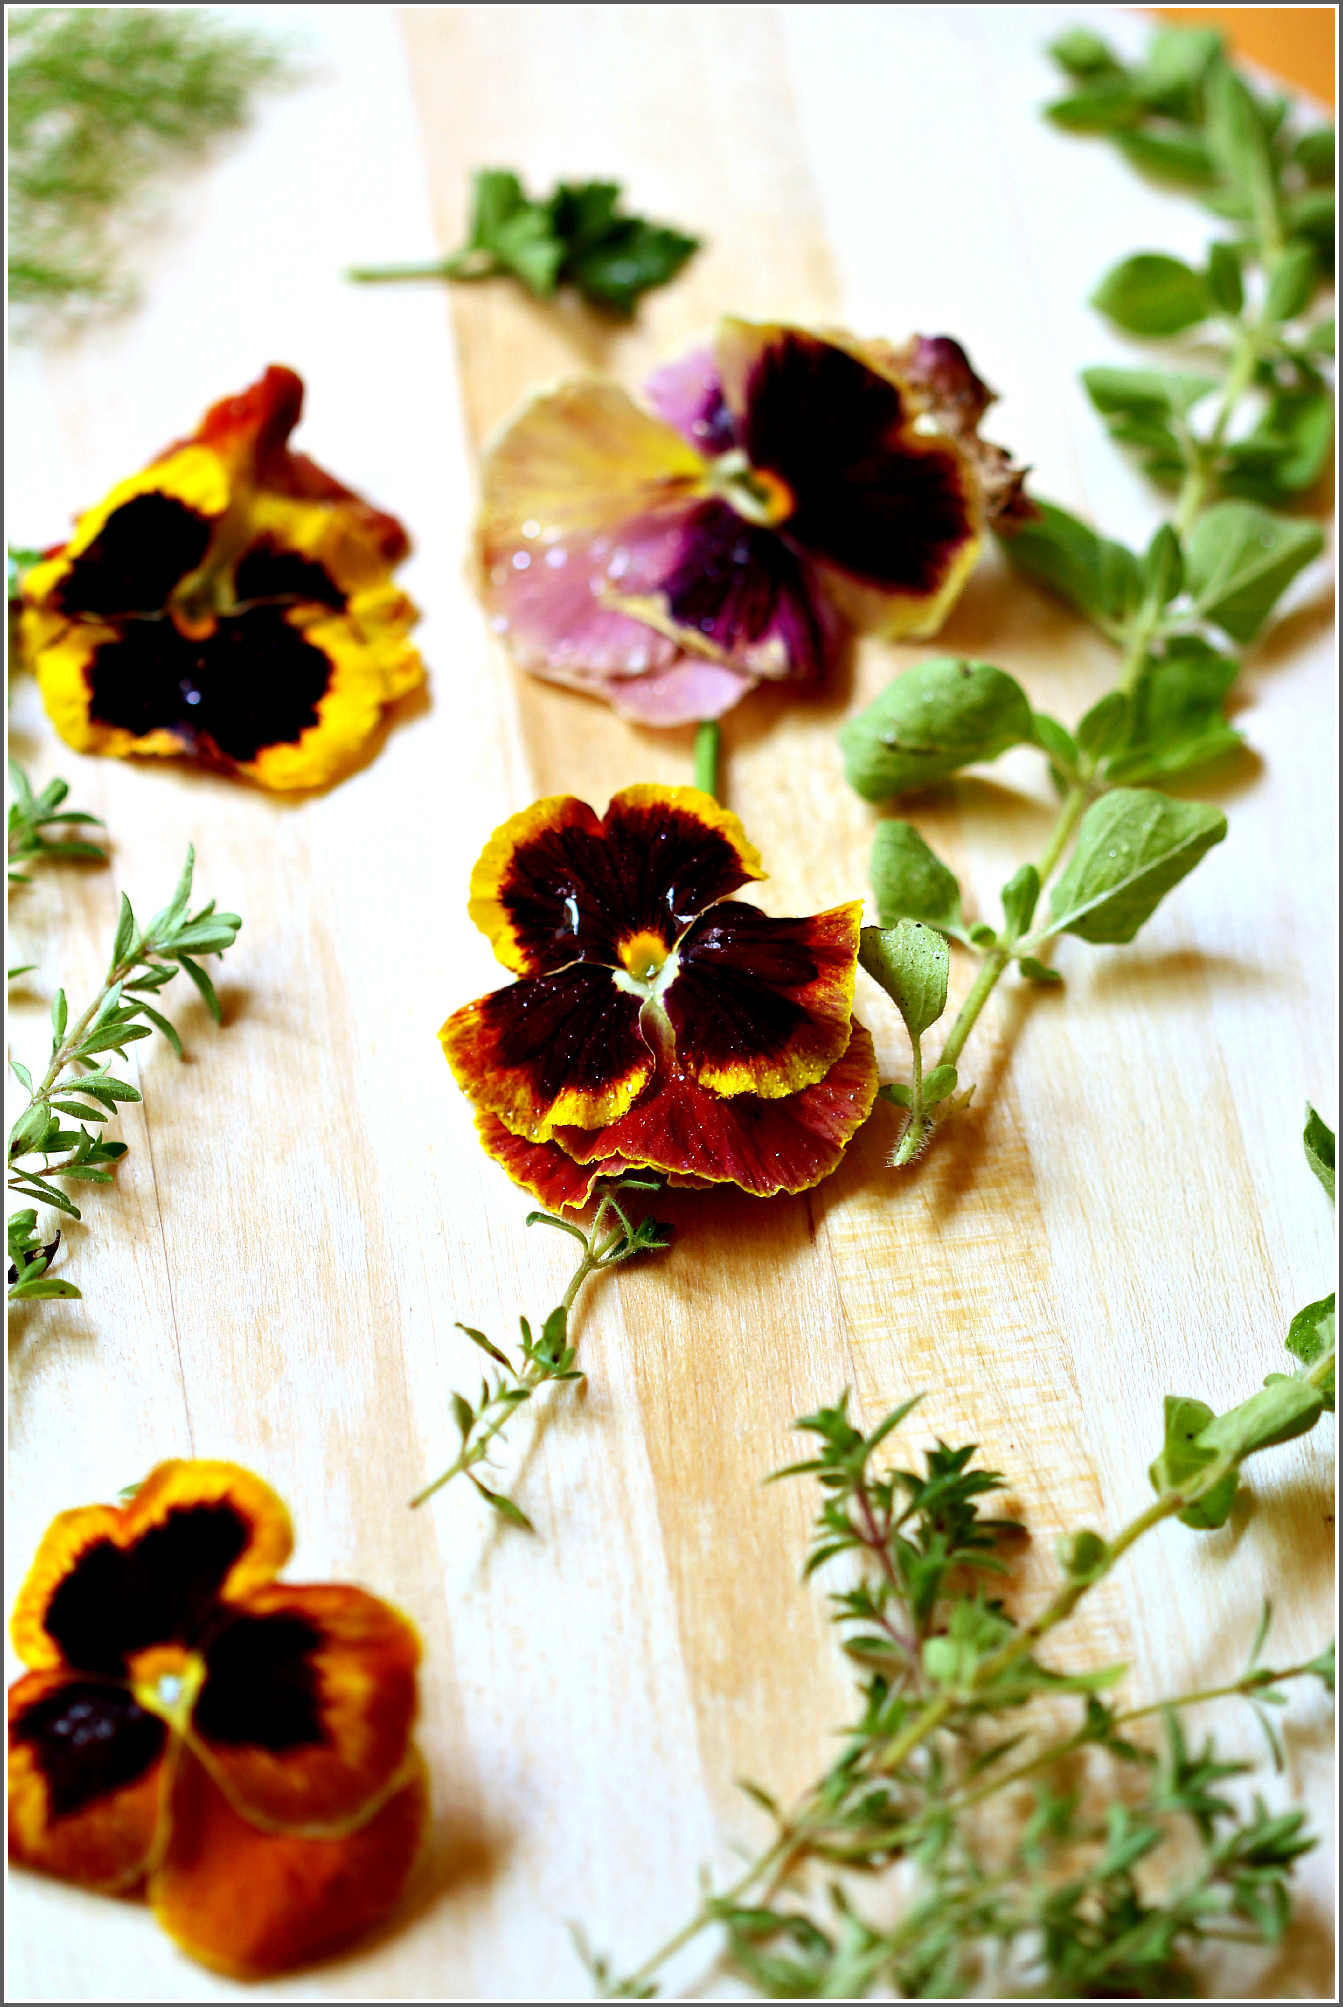 Pansies and Herbs on Cutting Board by Dena T Bray©